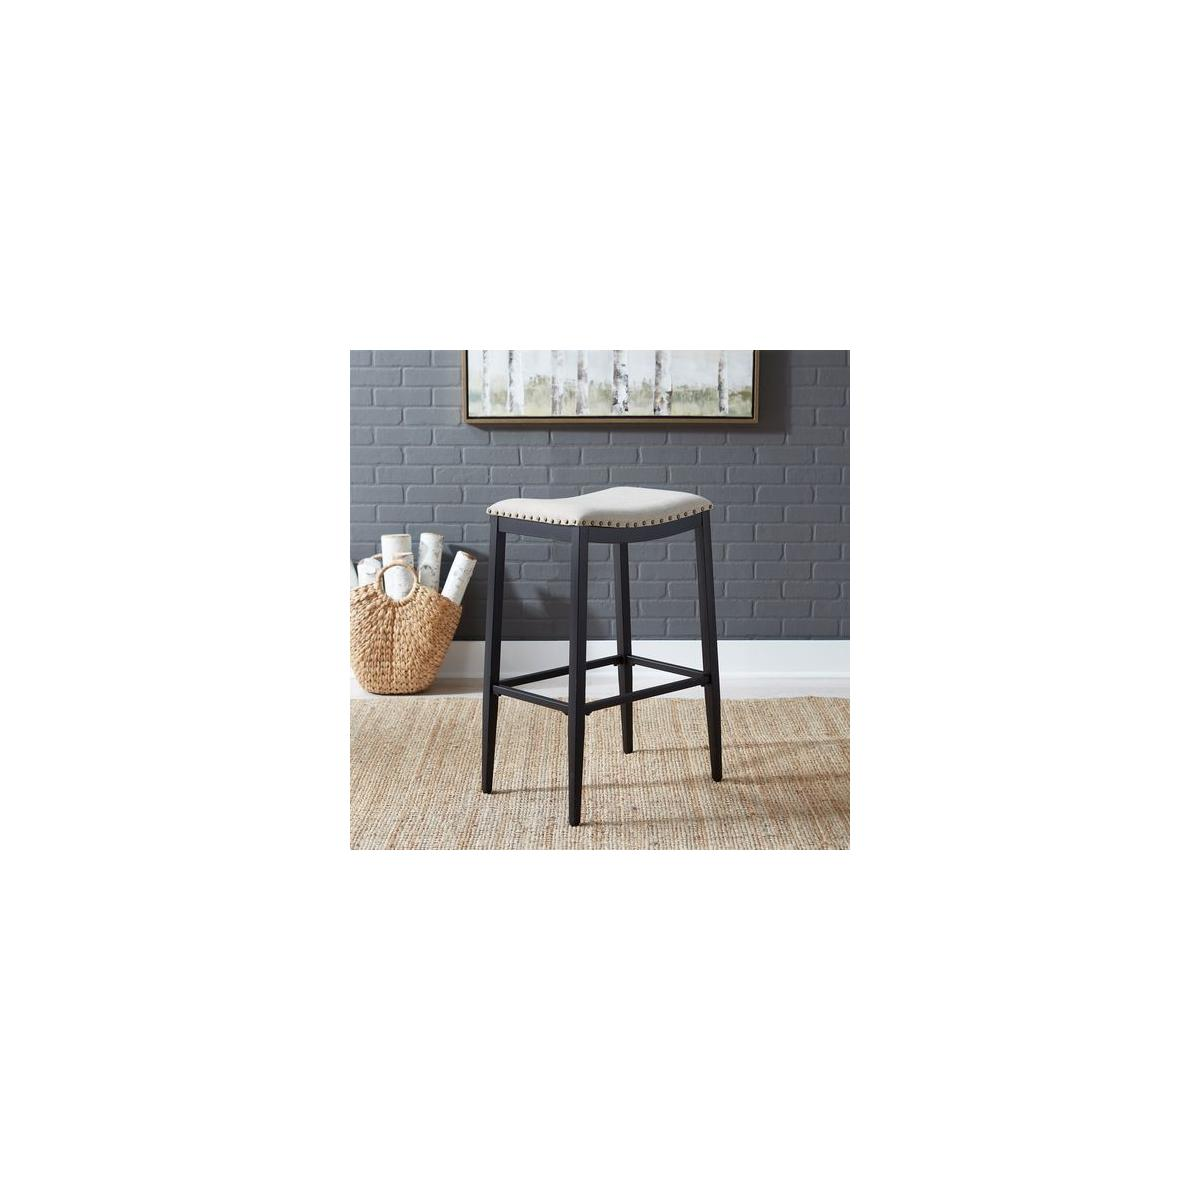 Backless Uph Barstool- Black